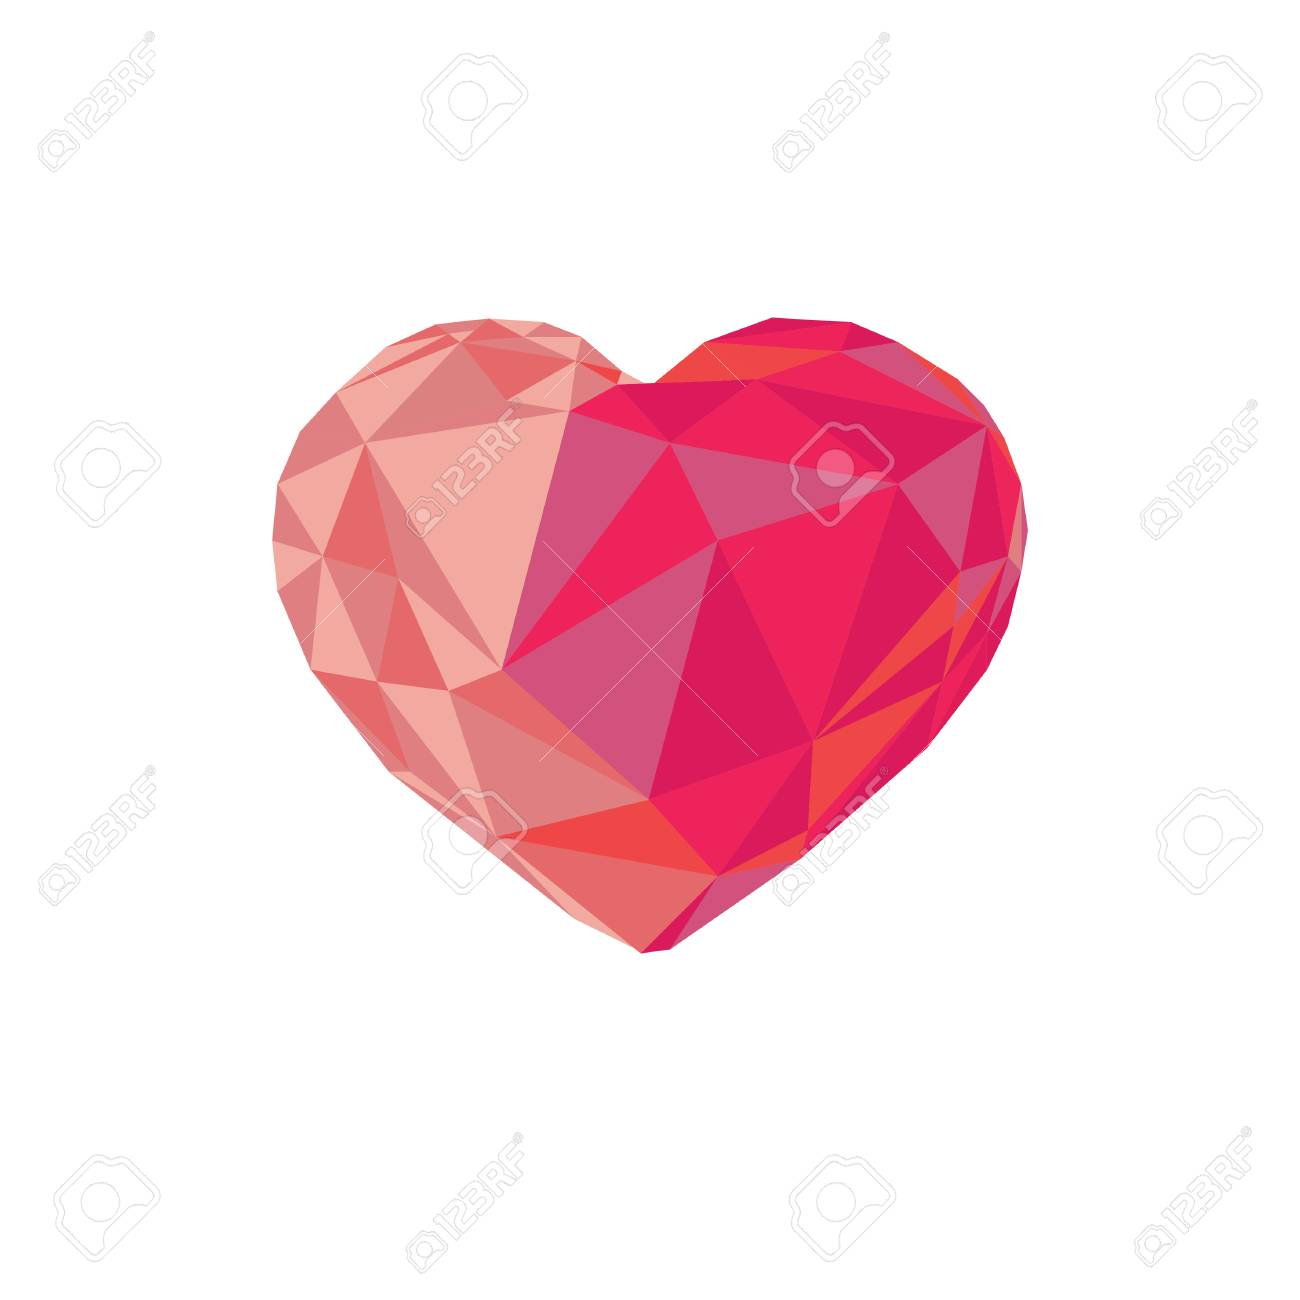 Low Poly Red Crystal Bright Heart Good For Valentine S Day Gifts Packs